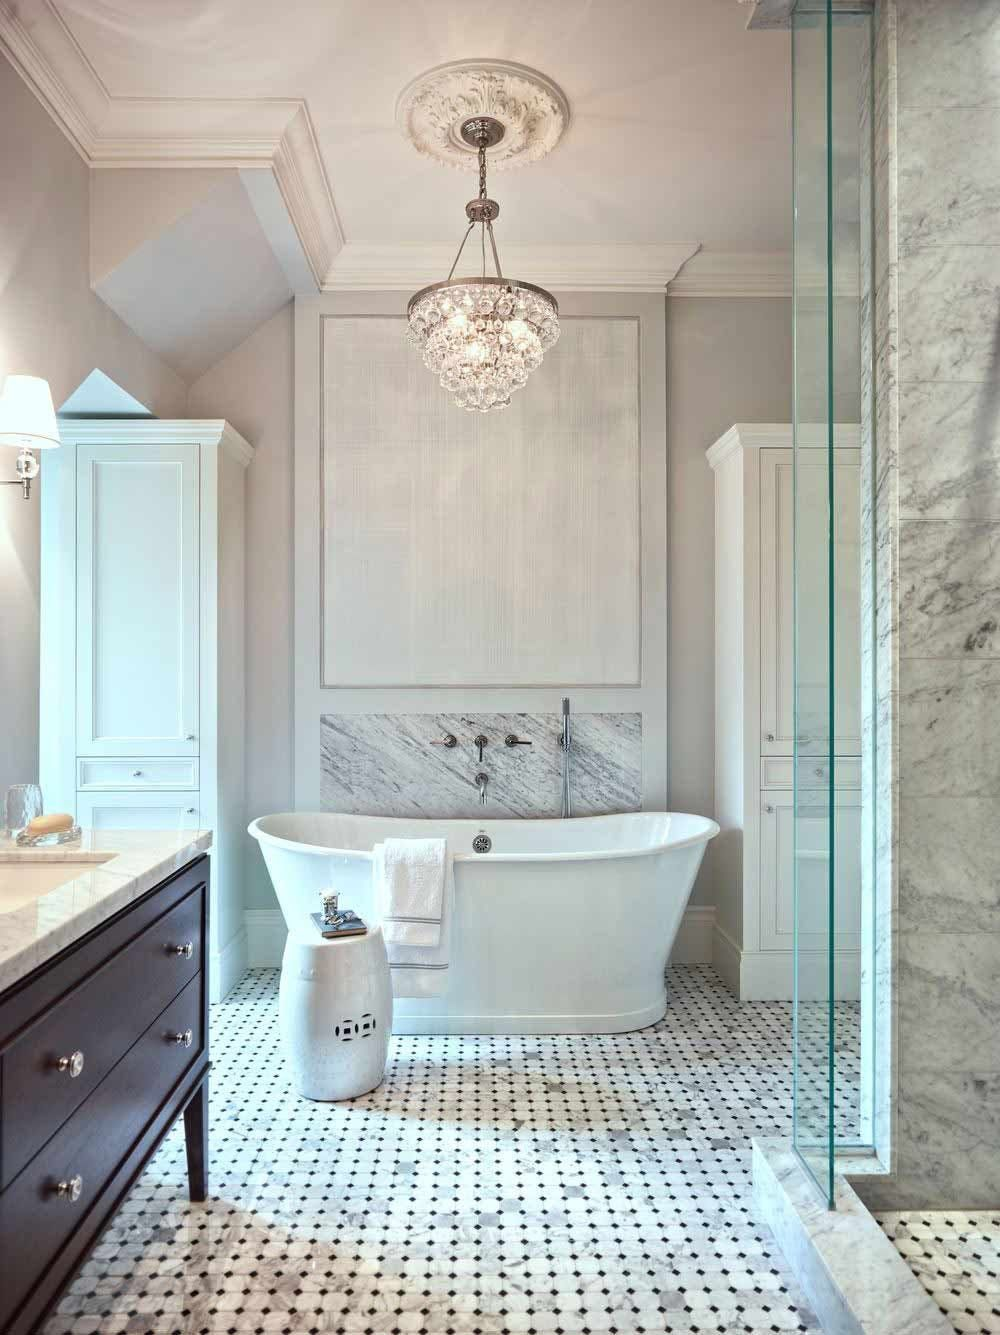 Fancy Bath Lighting: Inspiration and Tips for Hanging a Chandelier ...